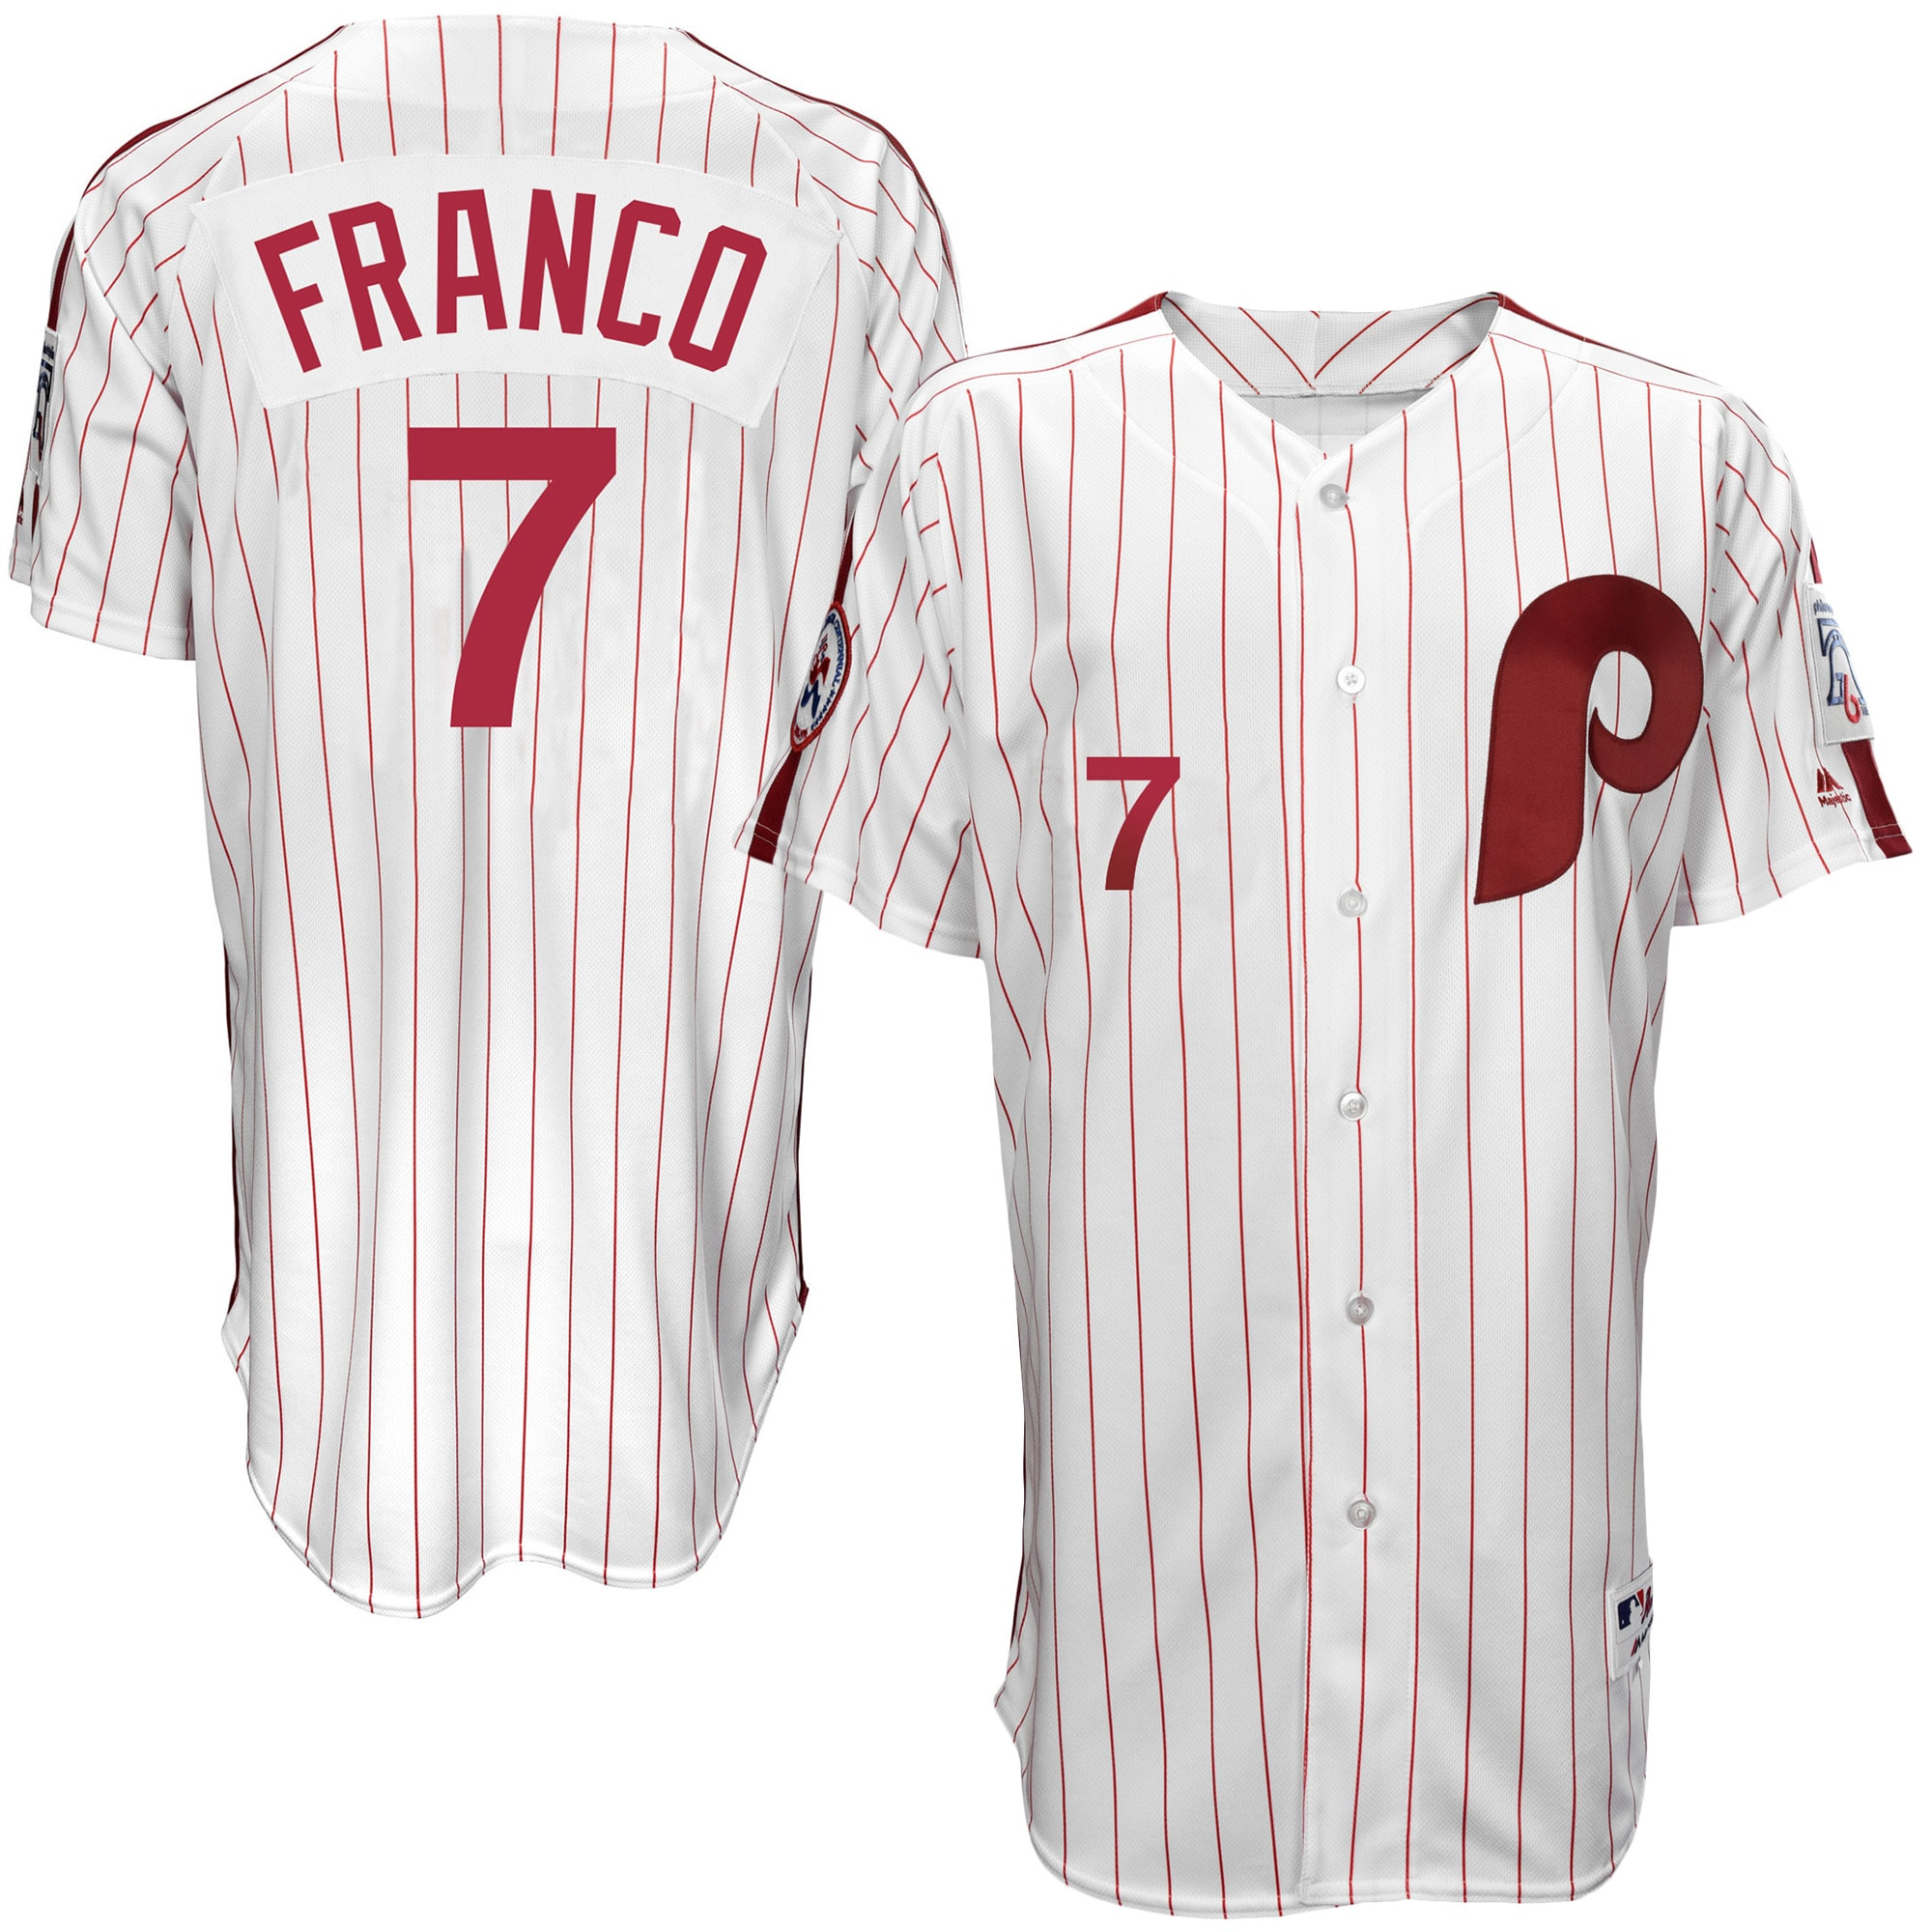 Maikel Franco Philadelphia Phillies Majestic Authentic 1976 Turn Back the Clock Player Jersey - White/Scarlet